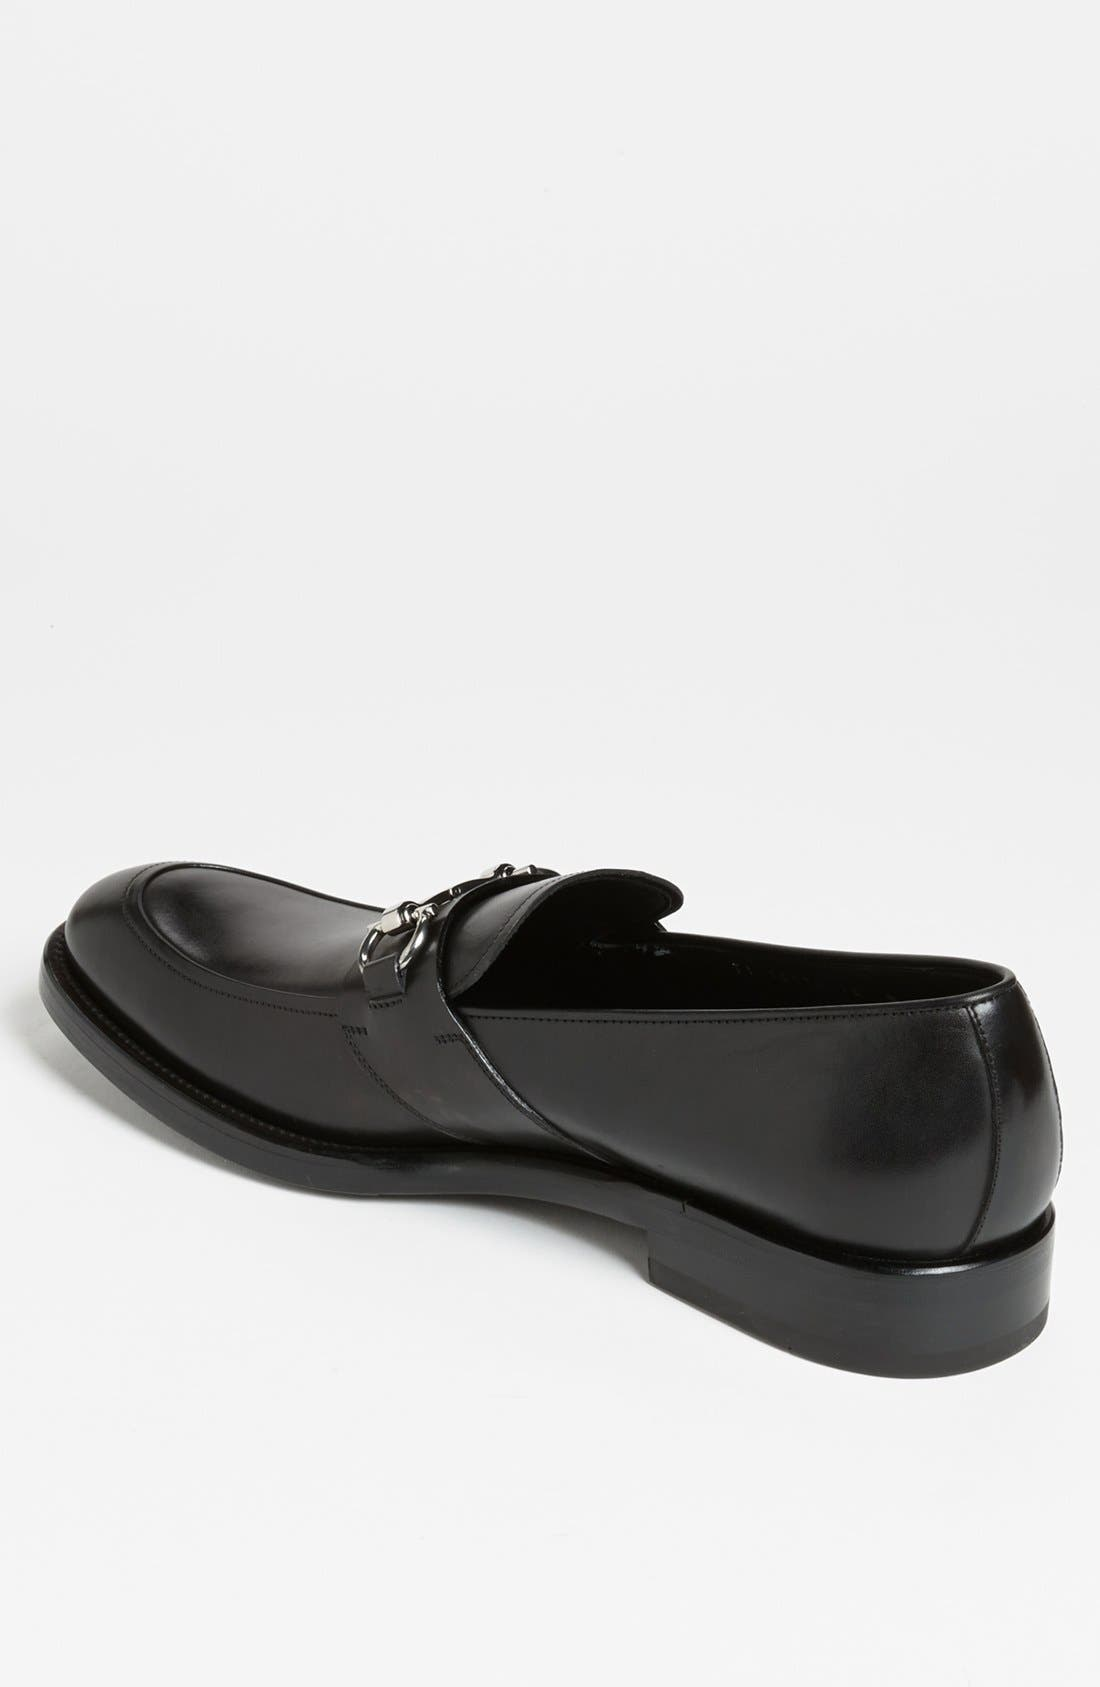 Alternate Image 2  - Salvatore Ferragamo 'Siracusa' Bit Loafer